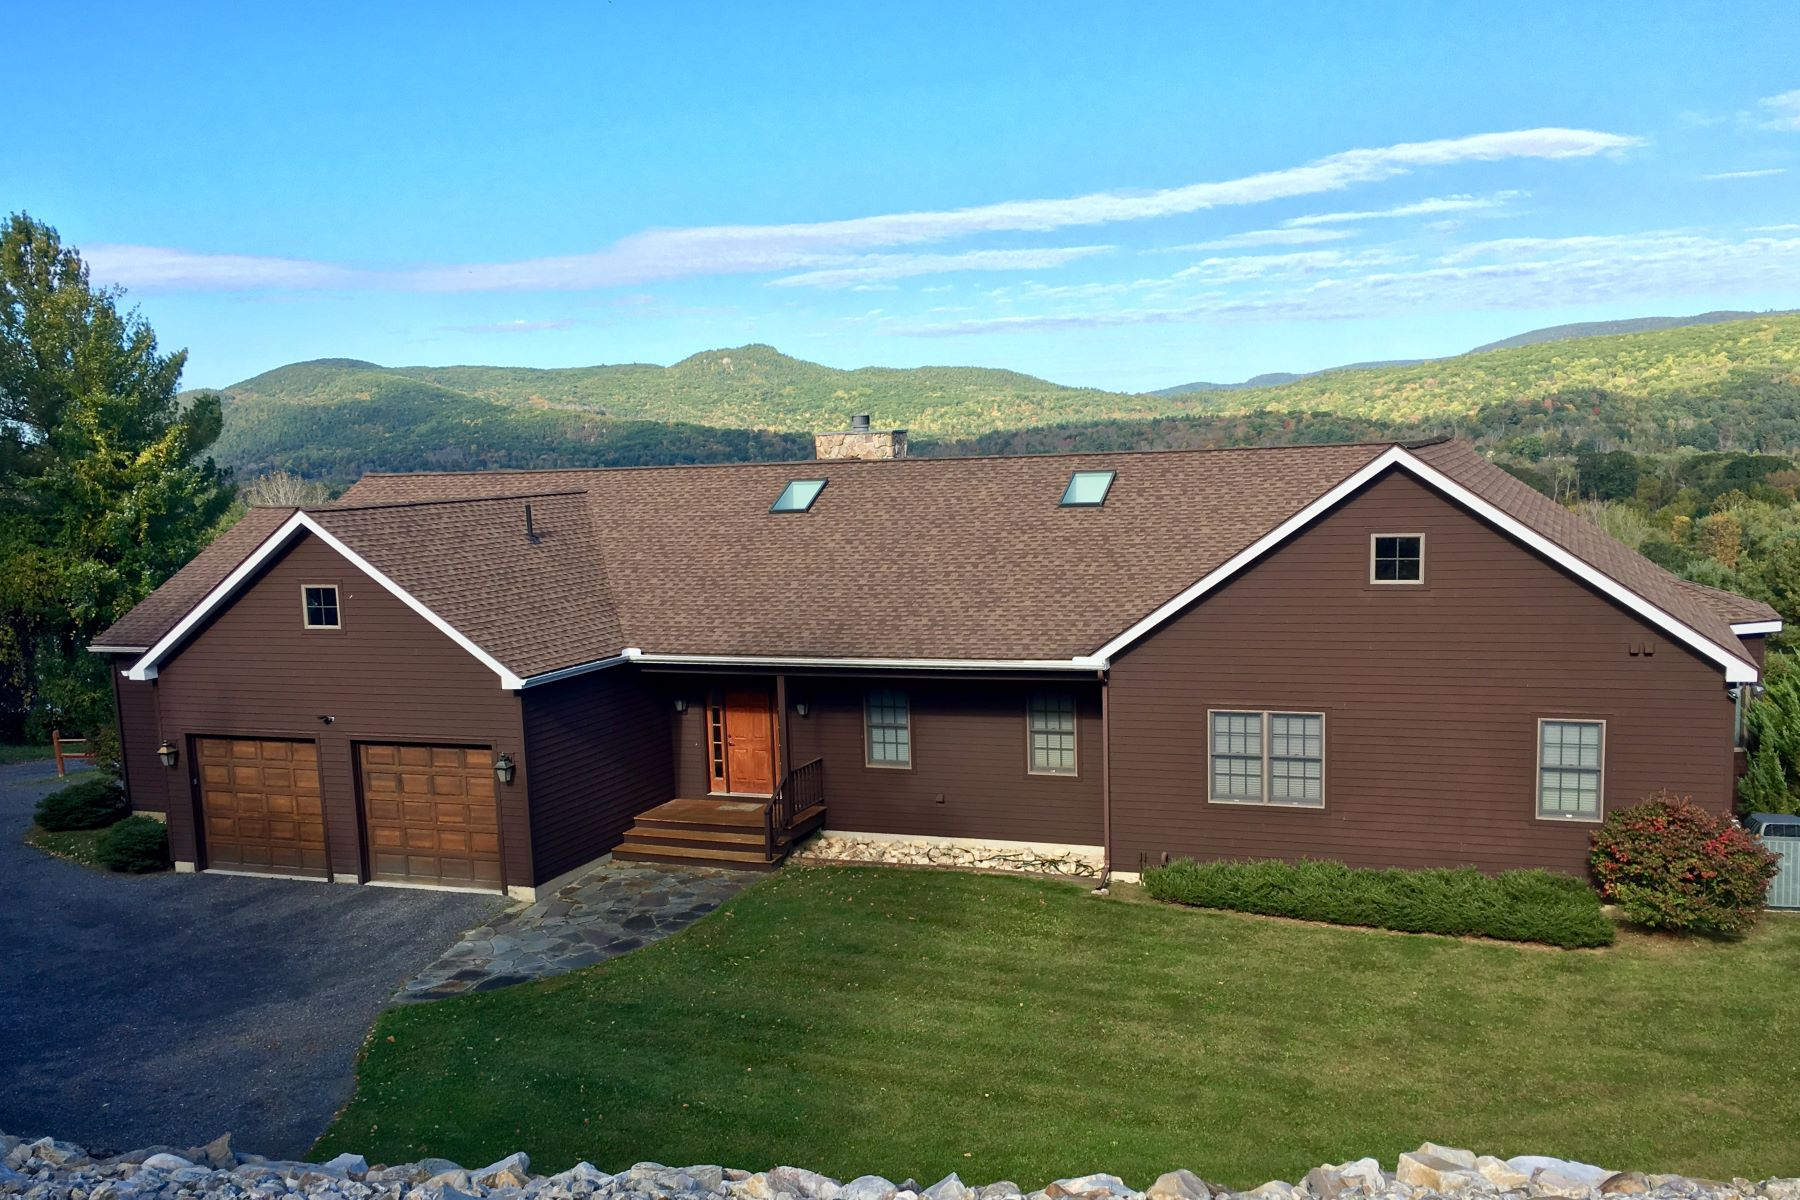 Single Family Home for Sale at Pristine Mountaintop Estate 55 Kalliste Hill Rd Great Barrington, Massachusetts 01230 United States